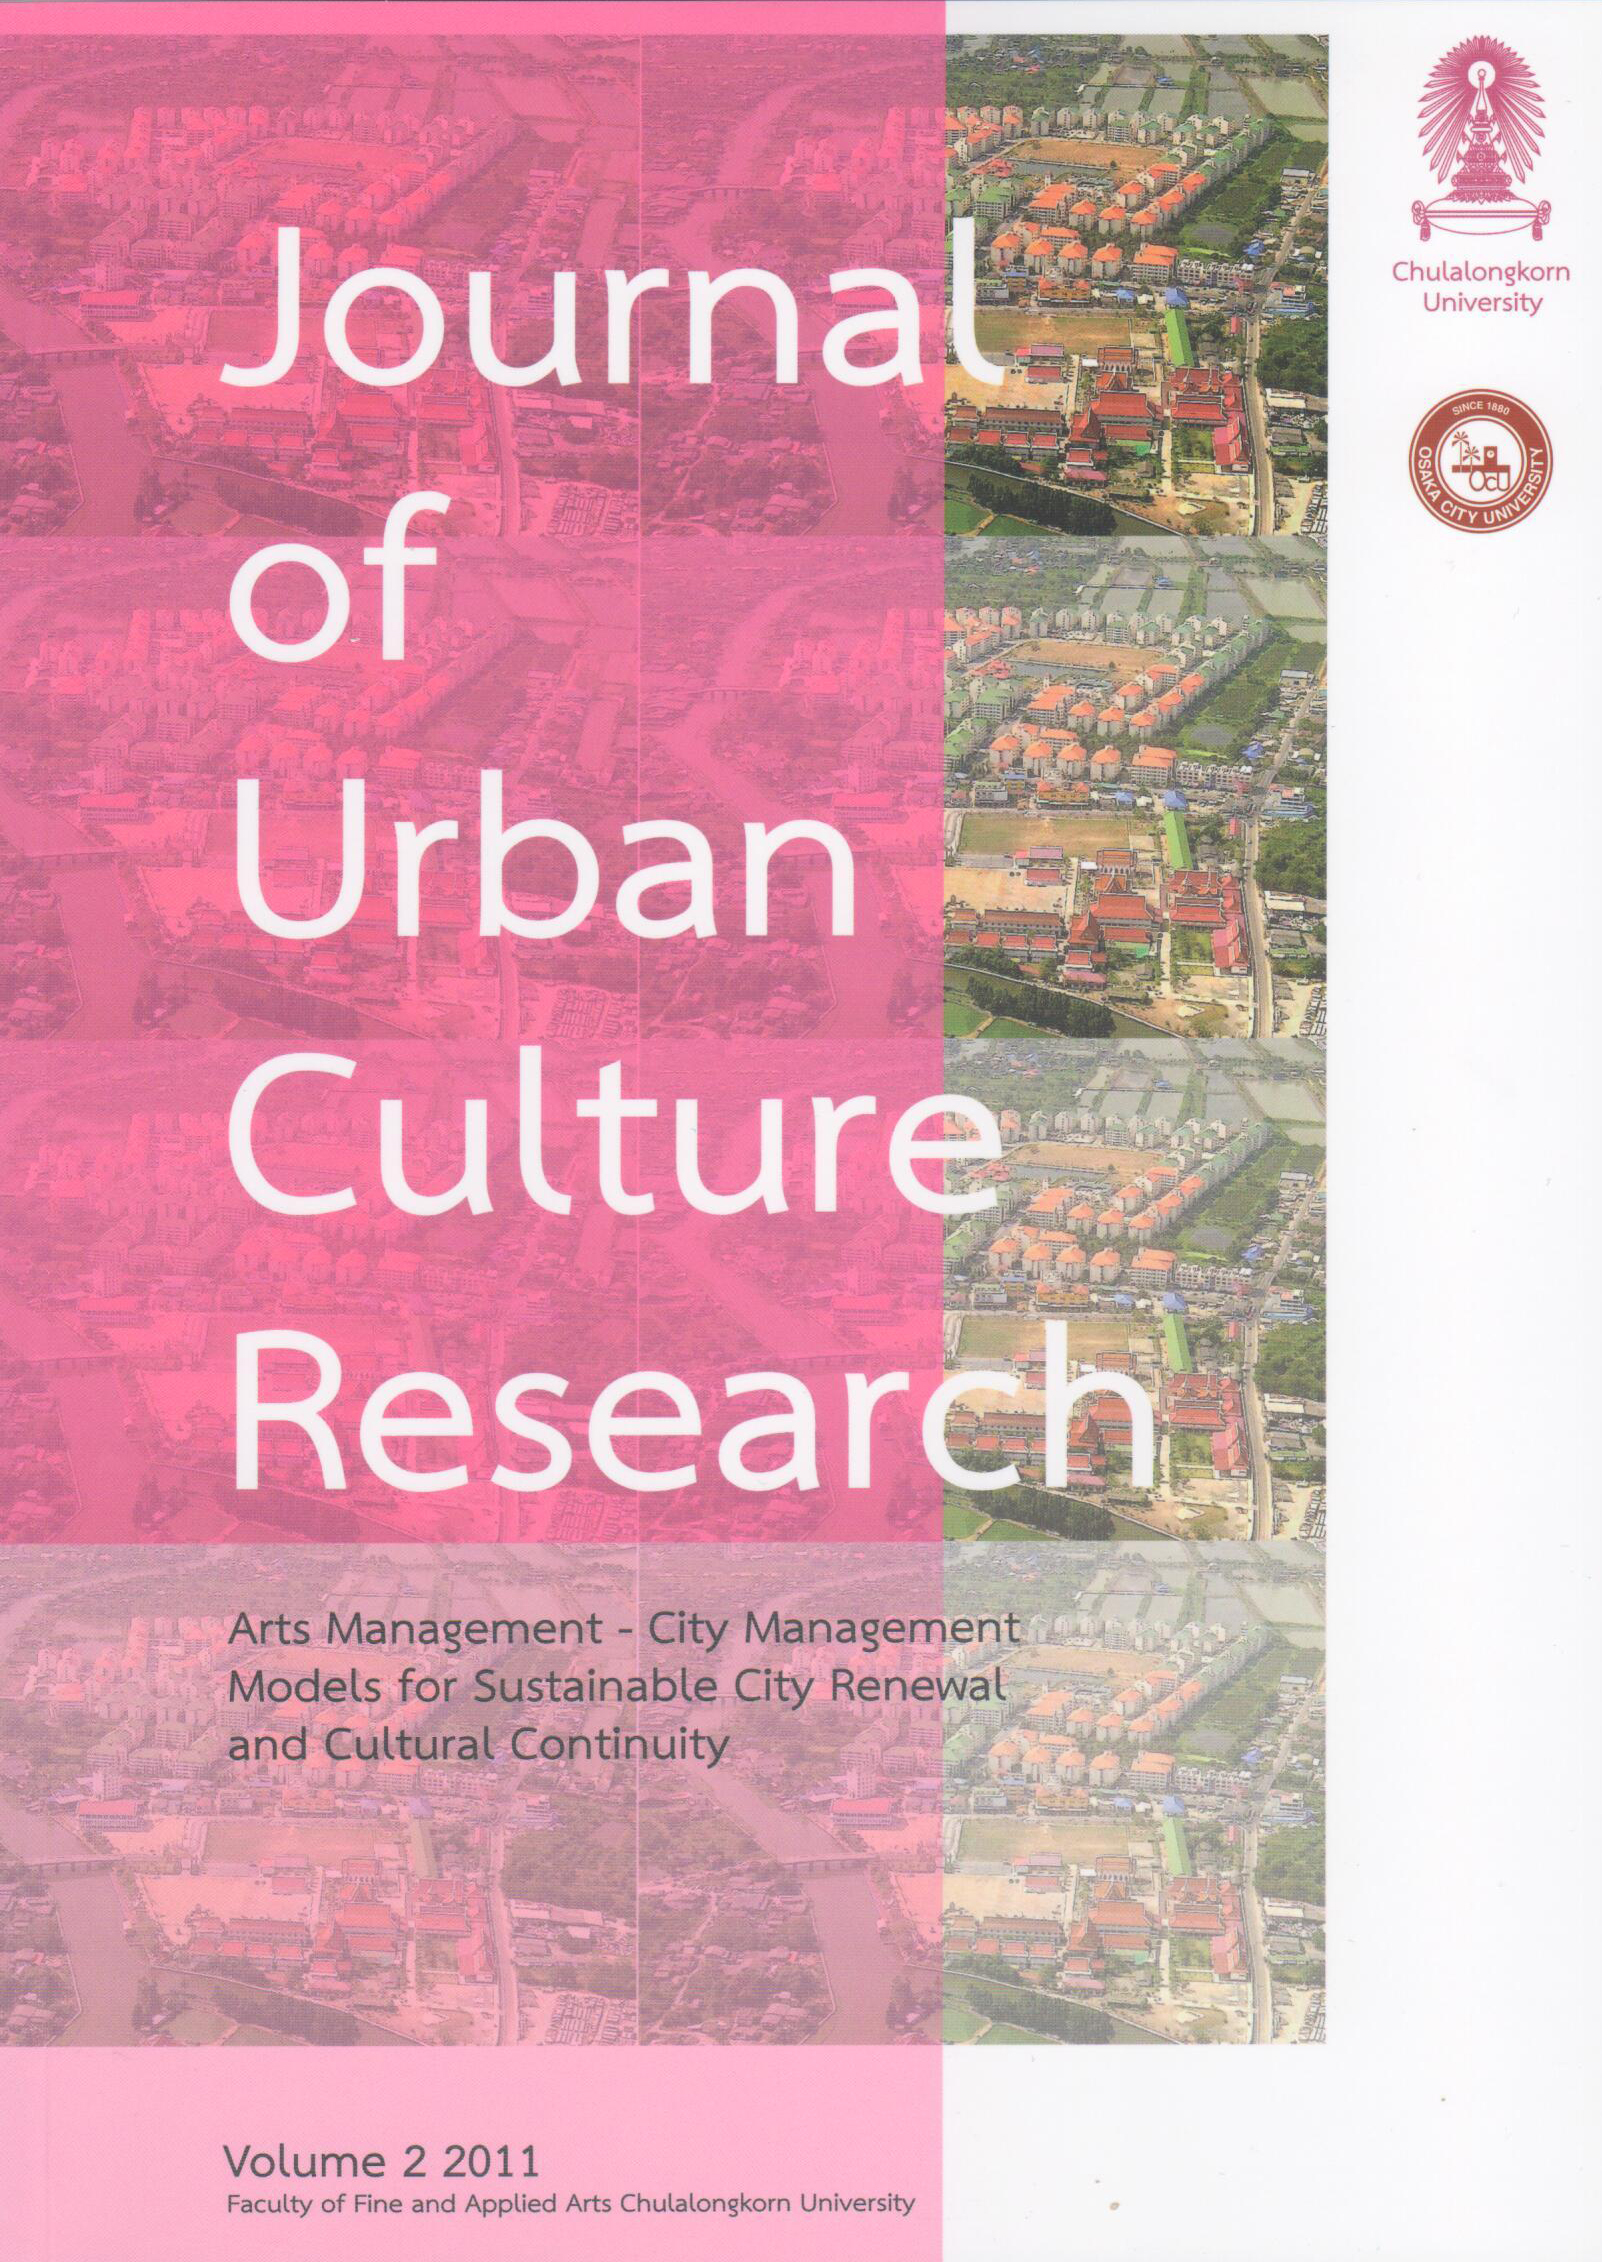 Journal of Urban Culture Research - Cover image Bangkok, Thailand provided by Alan Kinear